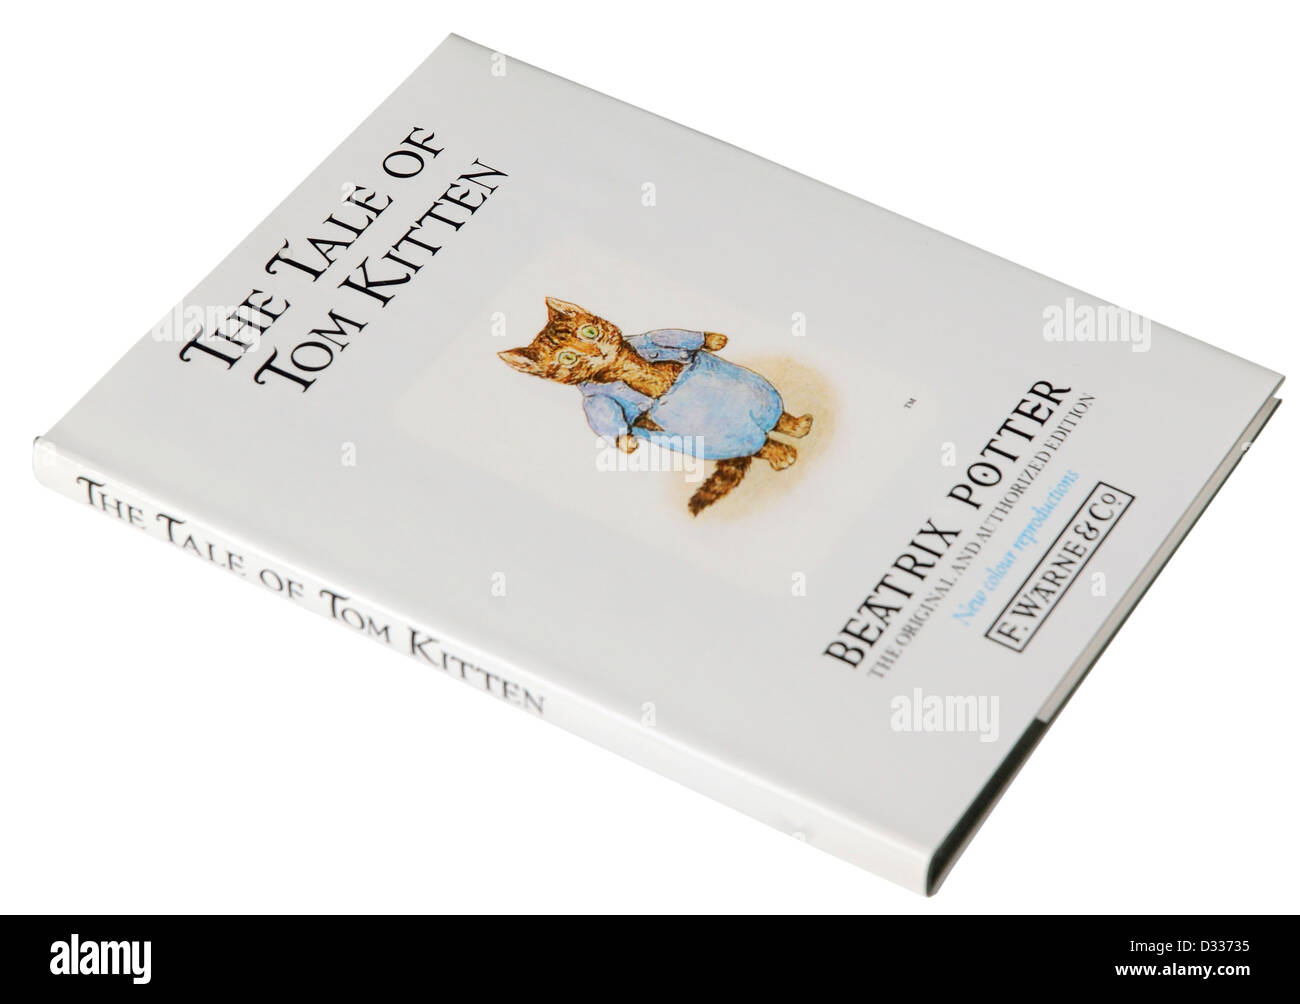 The Tale of Tom Kitten by Beatrix Potter - Stock Image